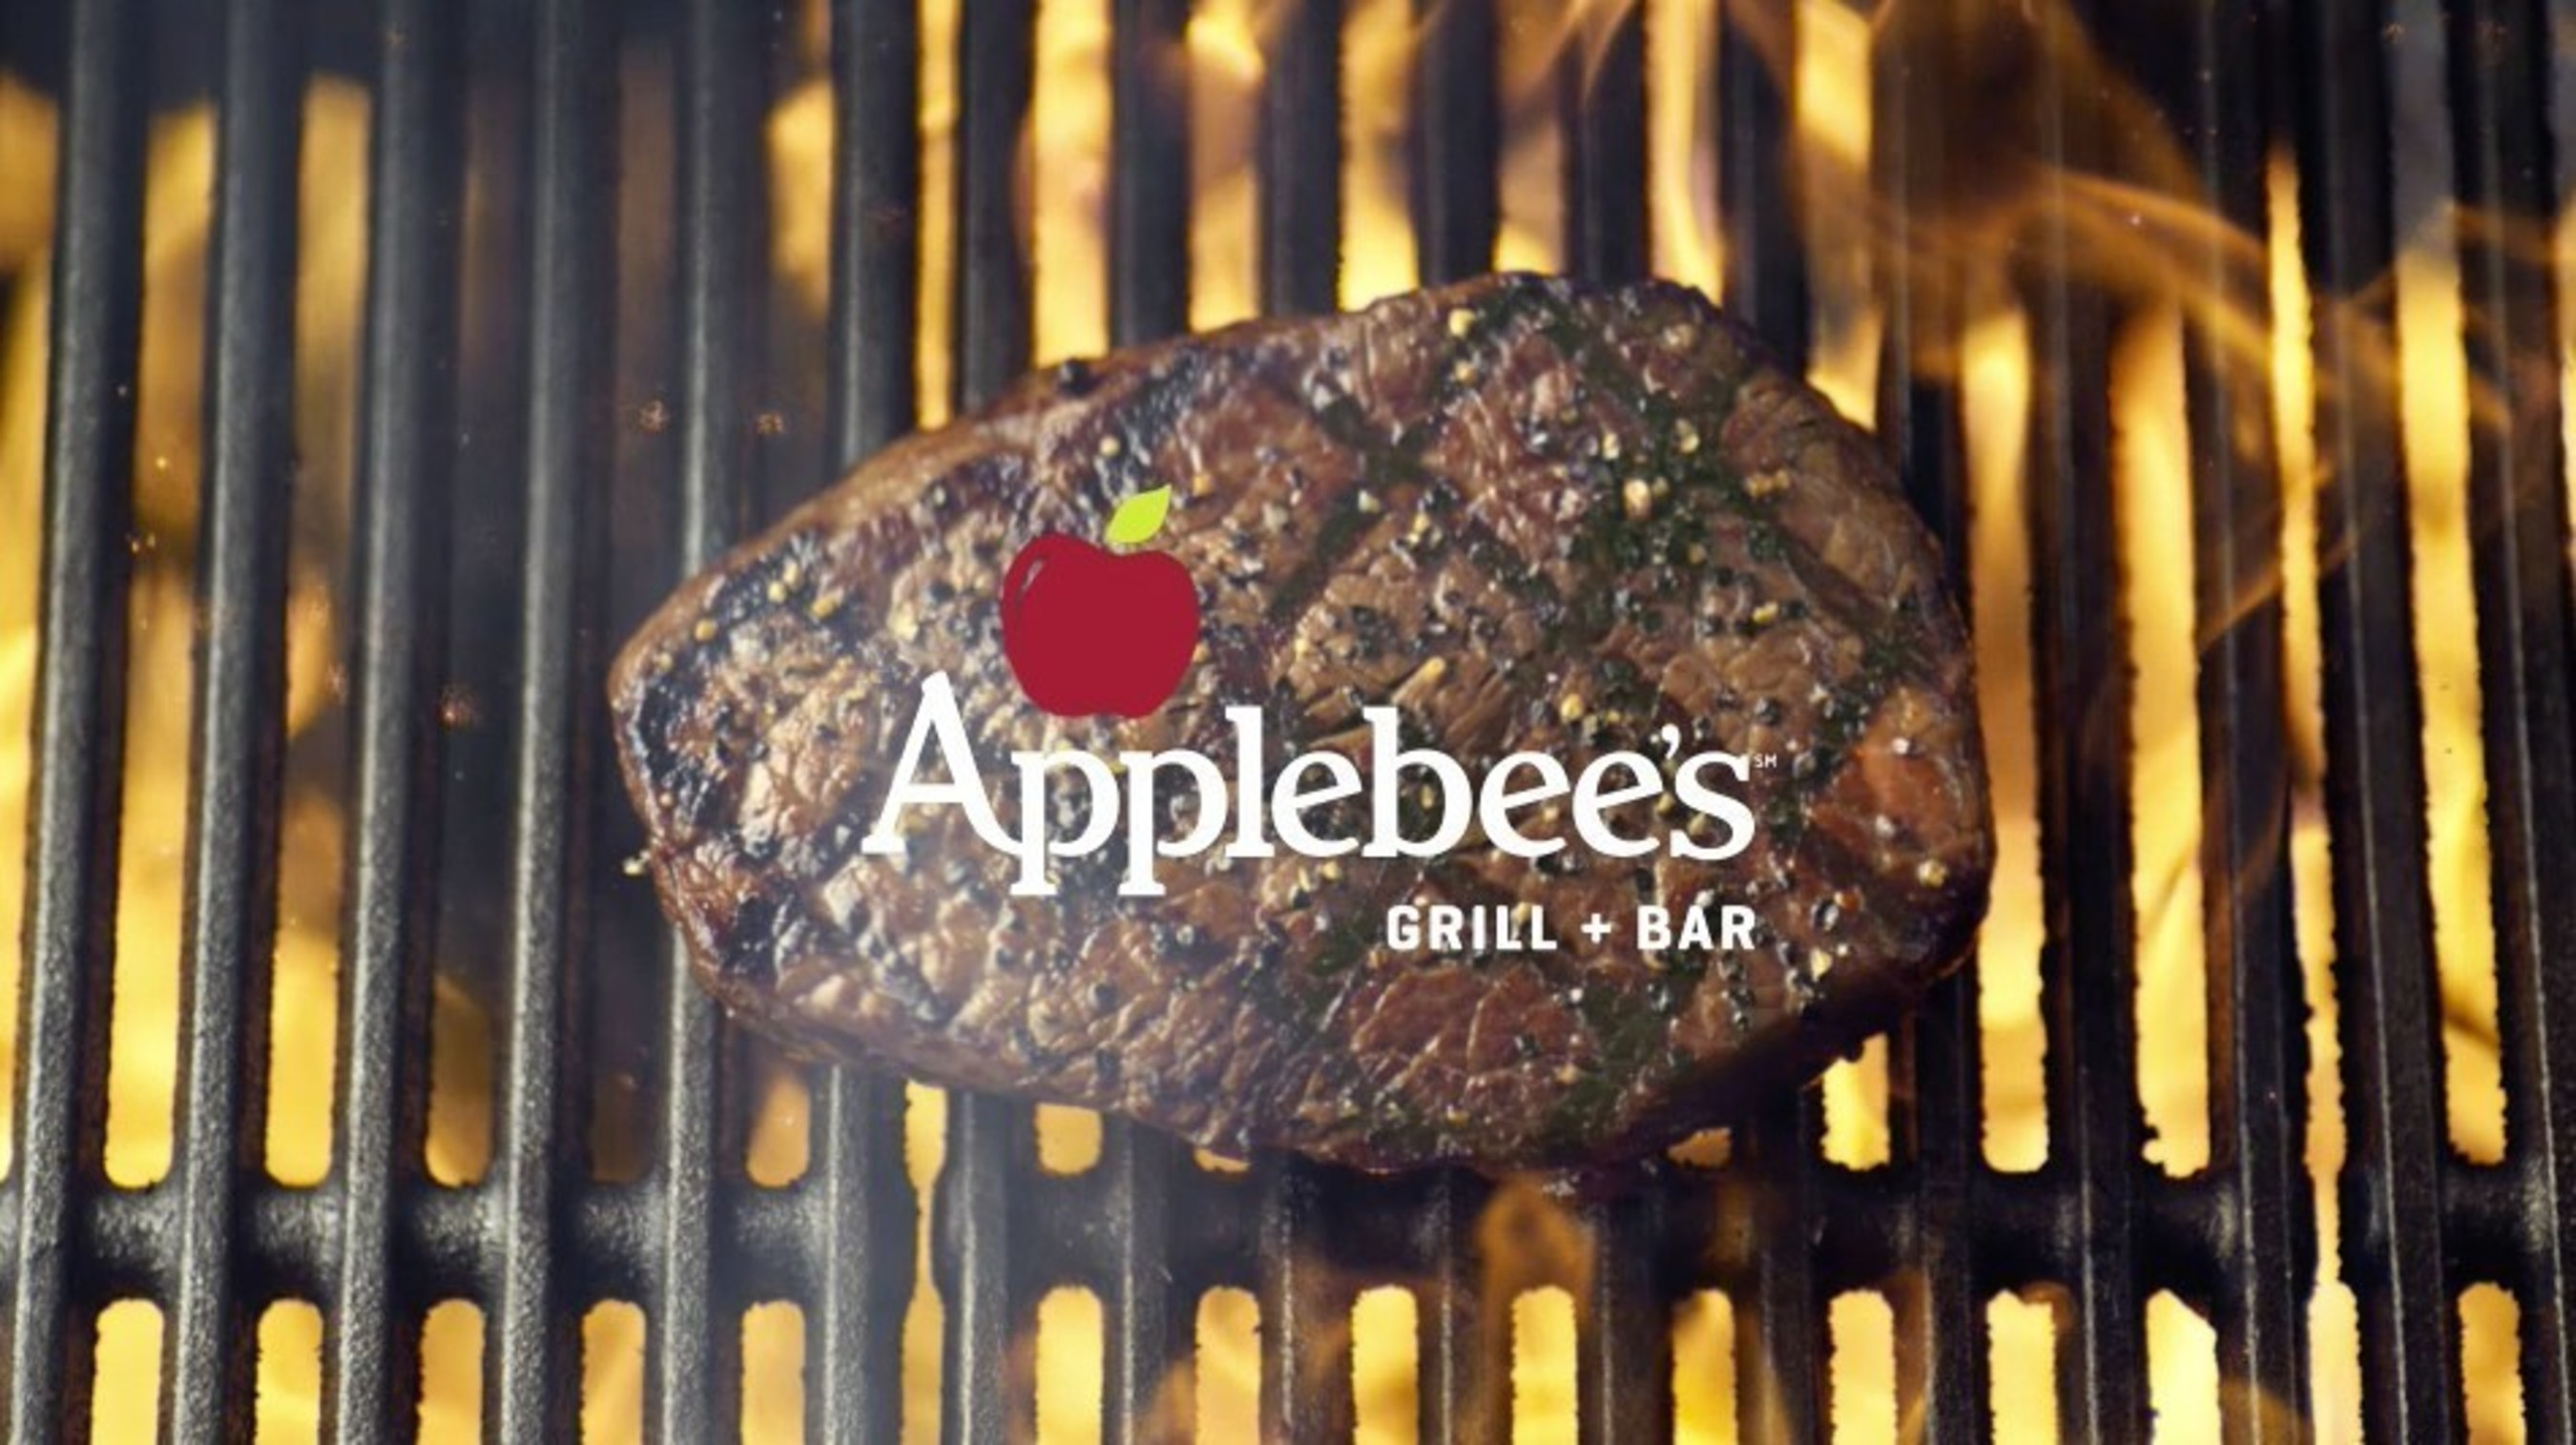 Applebee's new certified USDA Choice steaks are hand-cut in-house by trained meat cutters and grilled over American oak logs.